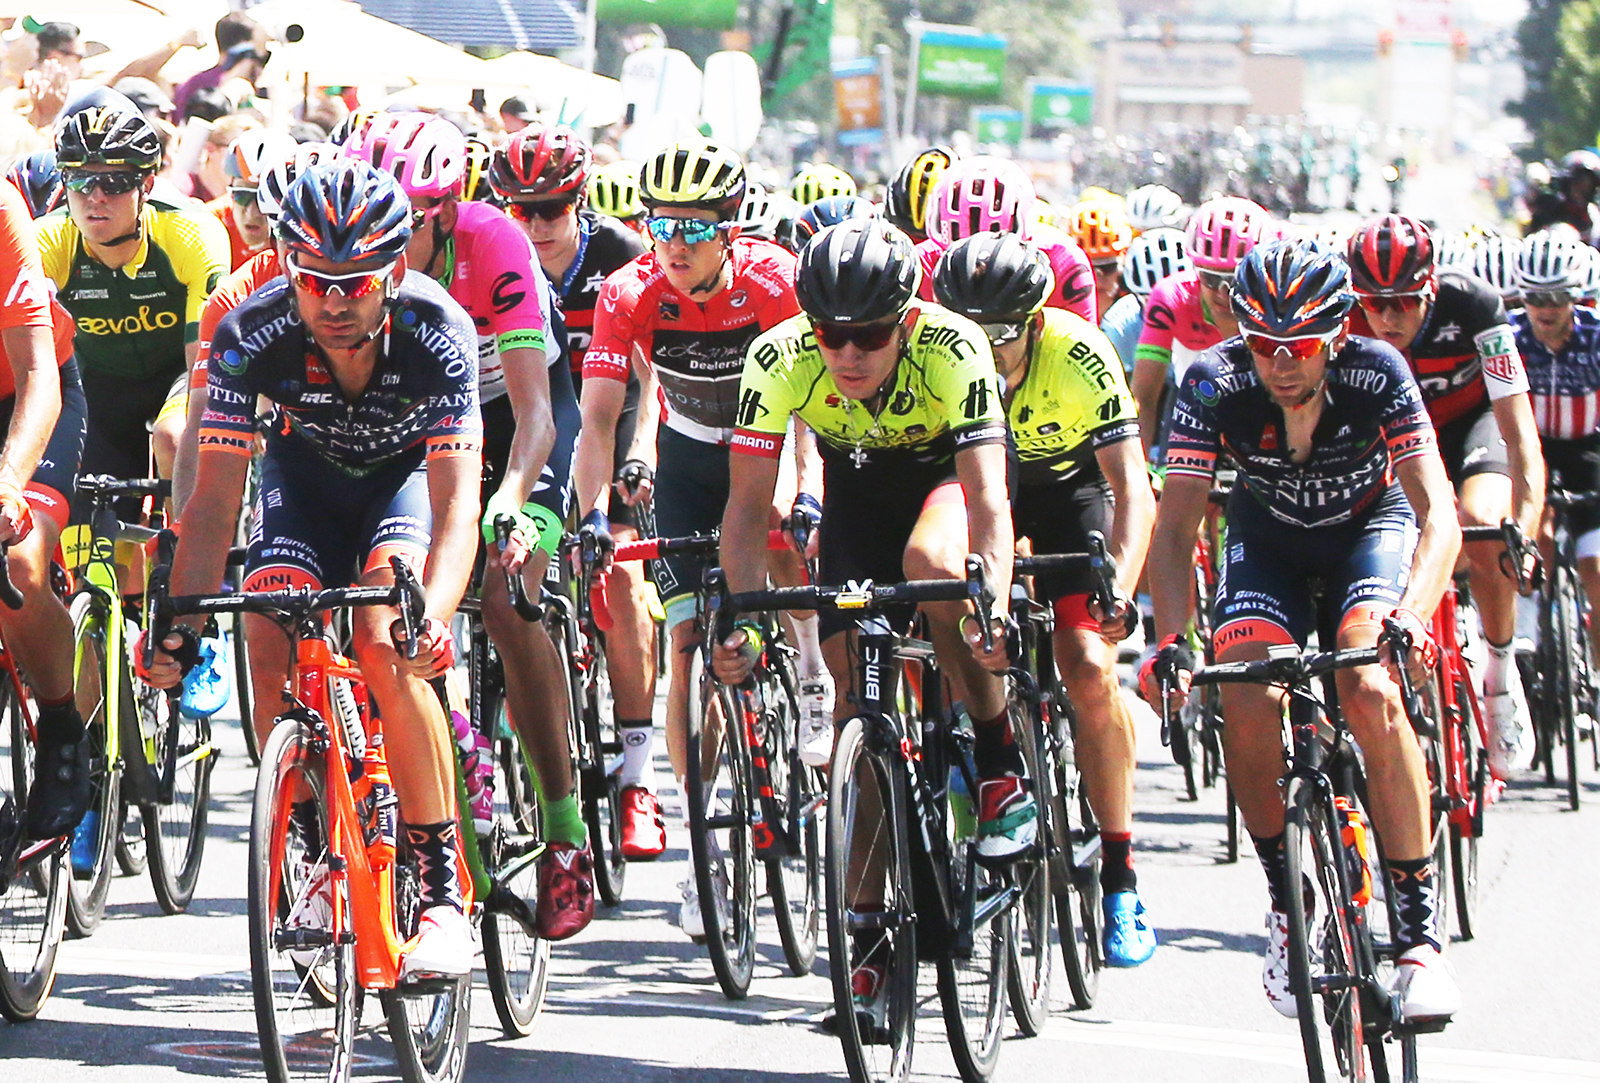 The pack. 2018 Tour of Utah Stage 3, August 8, 2018, Layton, Utah. Photo by Cathy Fegan-Kim, cottonsoxphotography.net